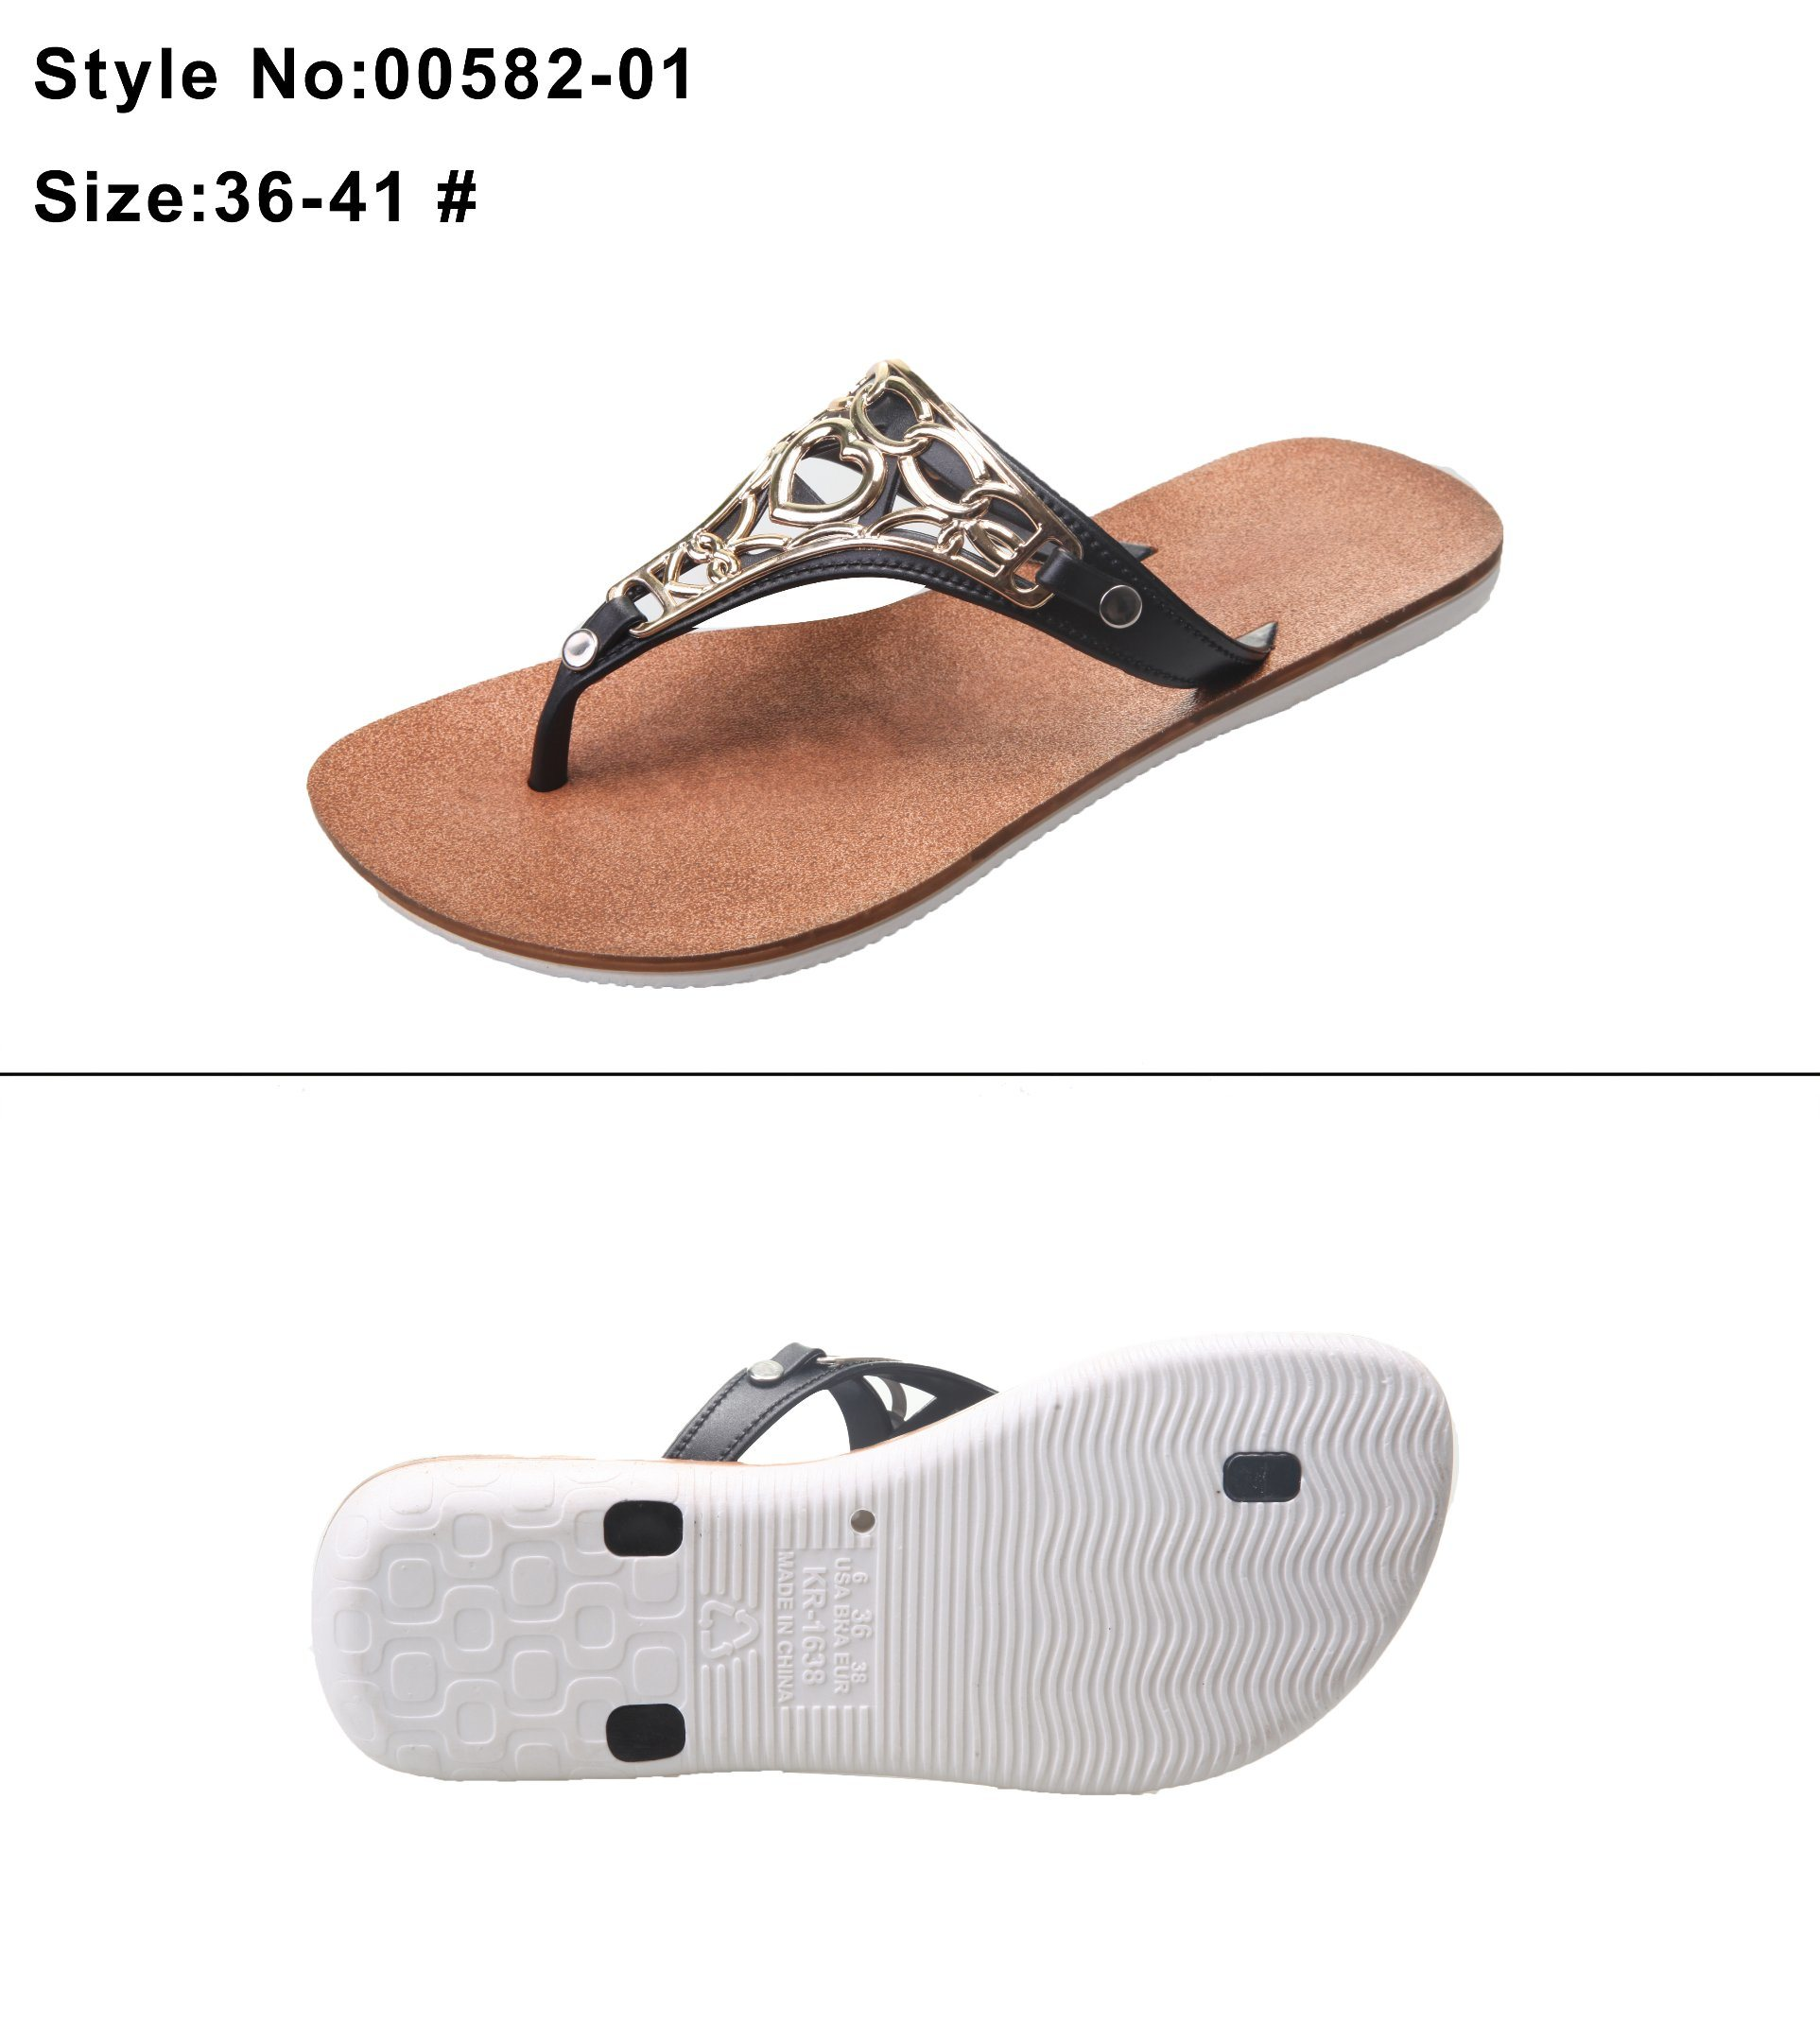 d399bc7add3dc Flat Clip Toe Women and Ladies Flip Flip Sandal Slipper with Metal  Decoration and Wide Strip Strap